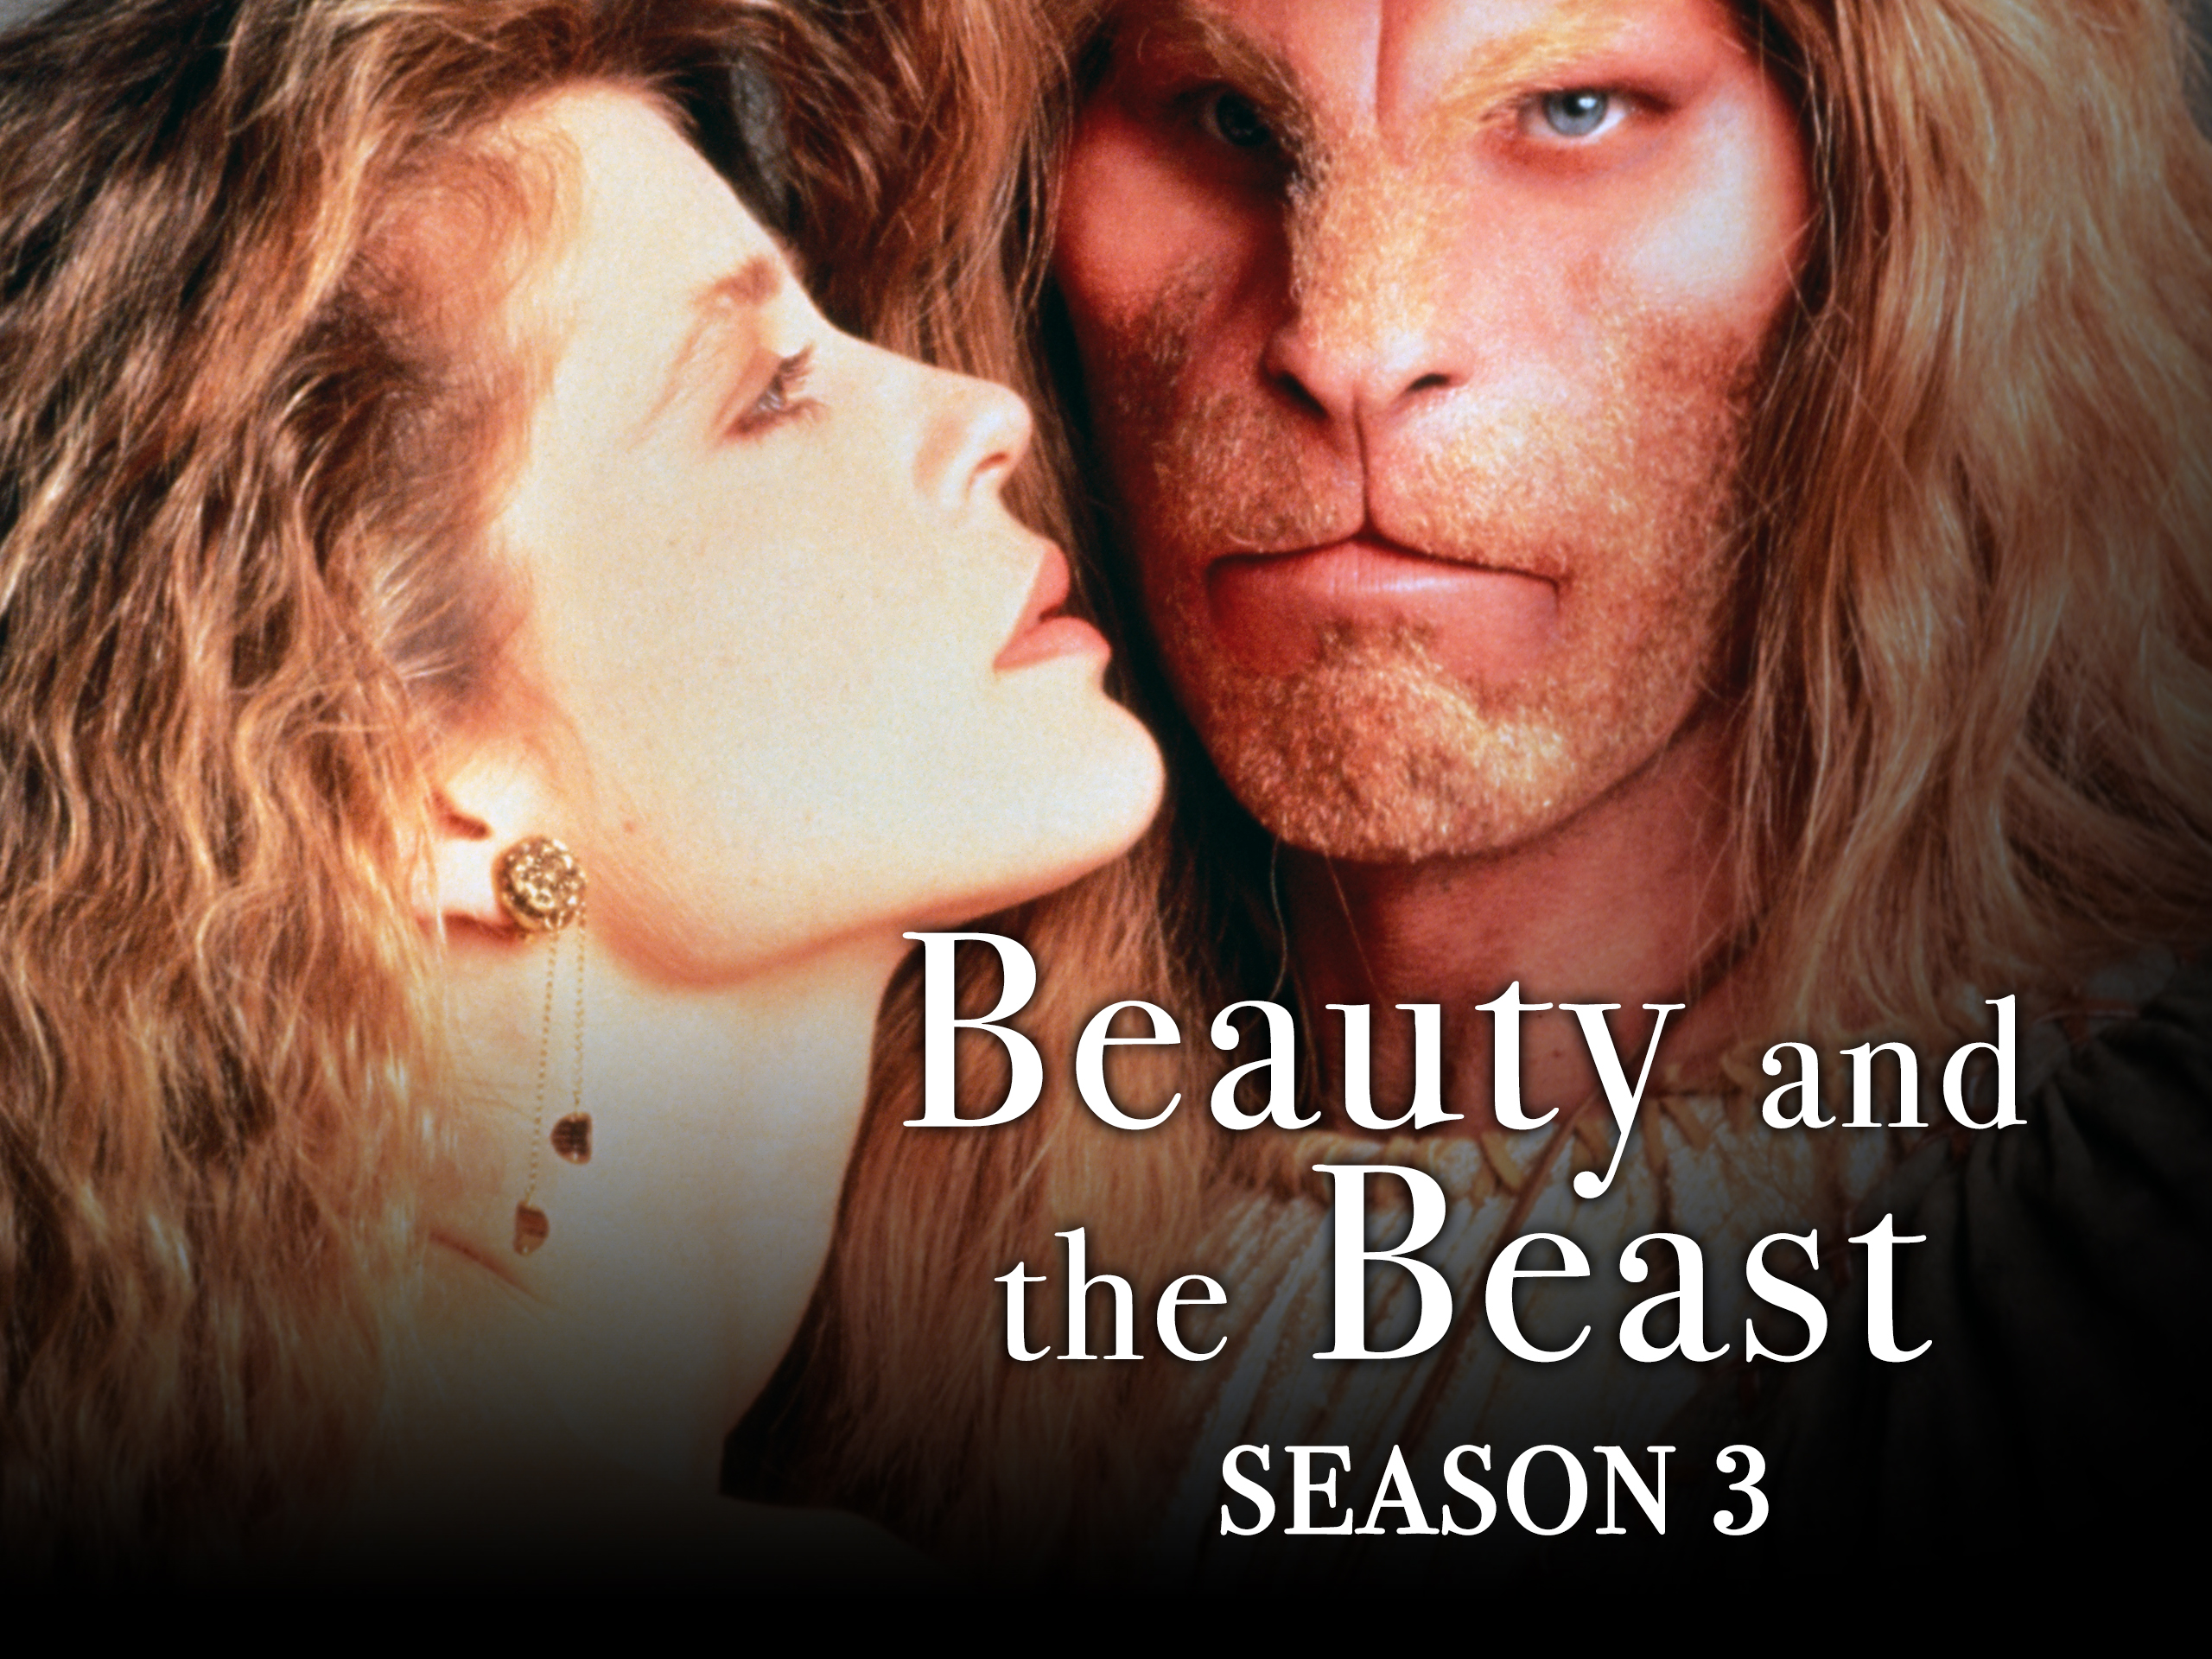 Watch Beauty and the Beast Season 3 Episode 11: The